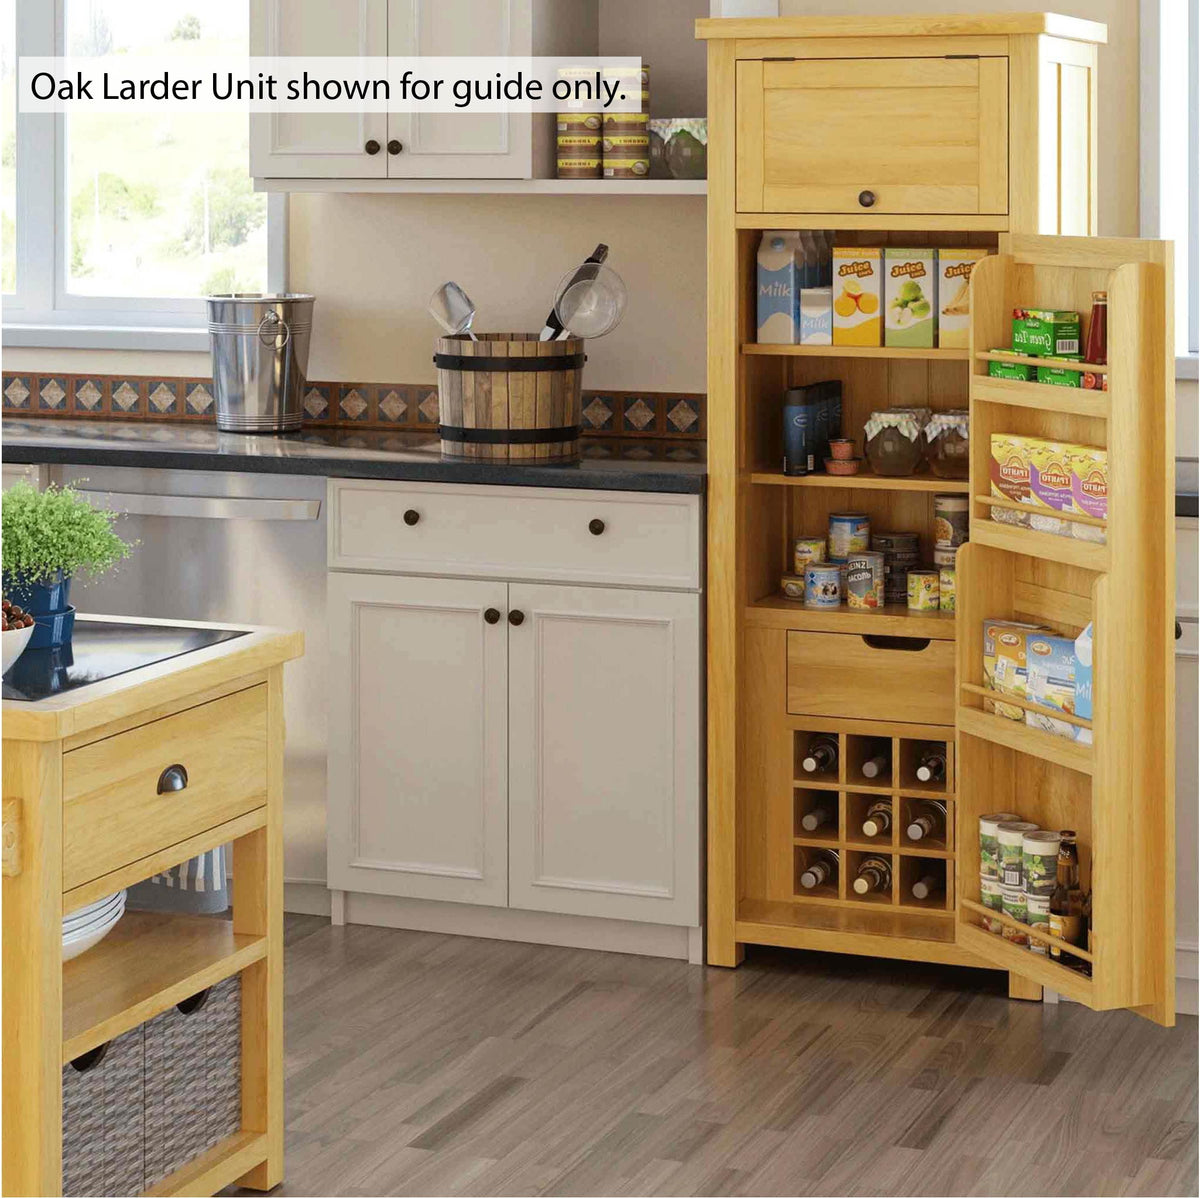 Padstow Grey Small Larder Unit - Lifestyle View shown in Oak